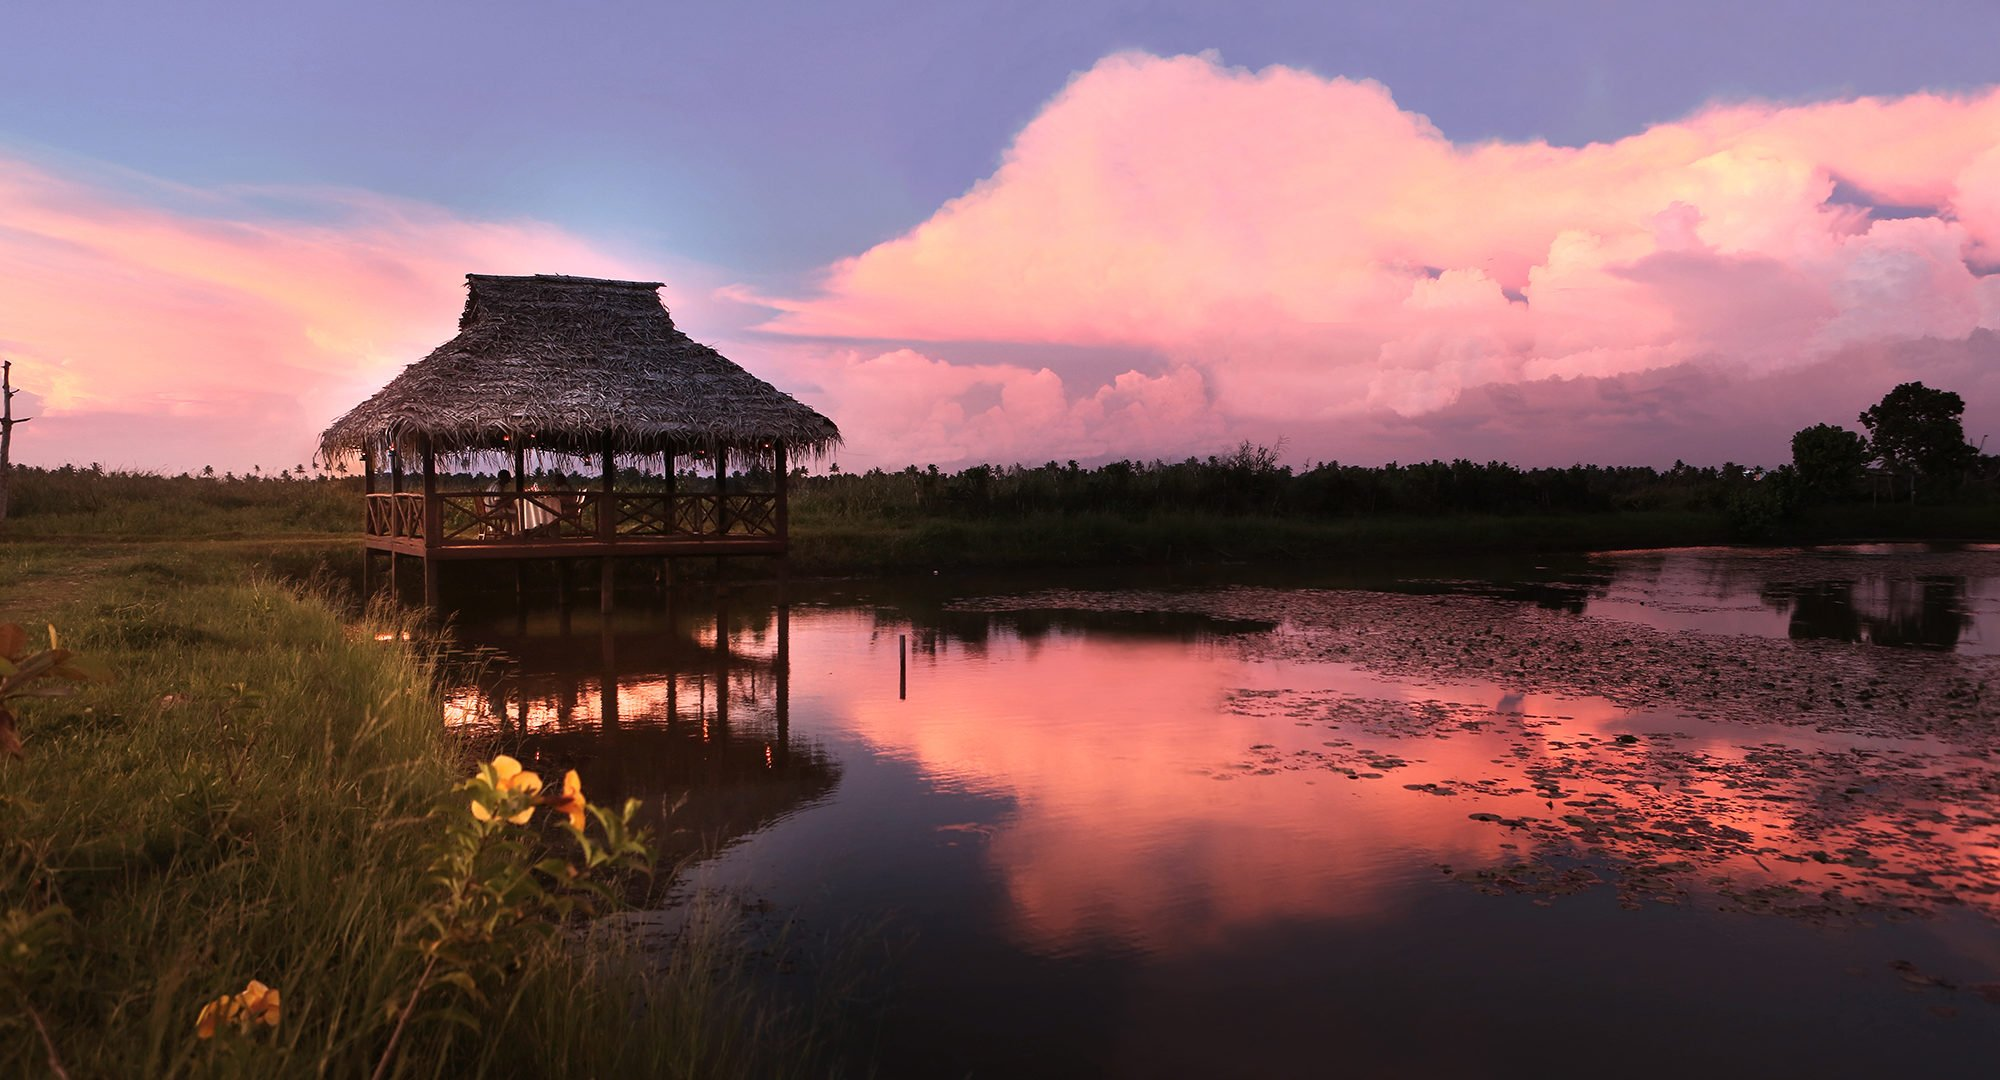 Hut, Sunset, Kerala, India